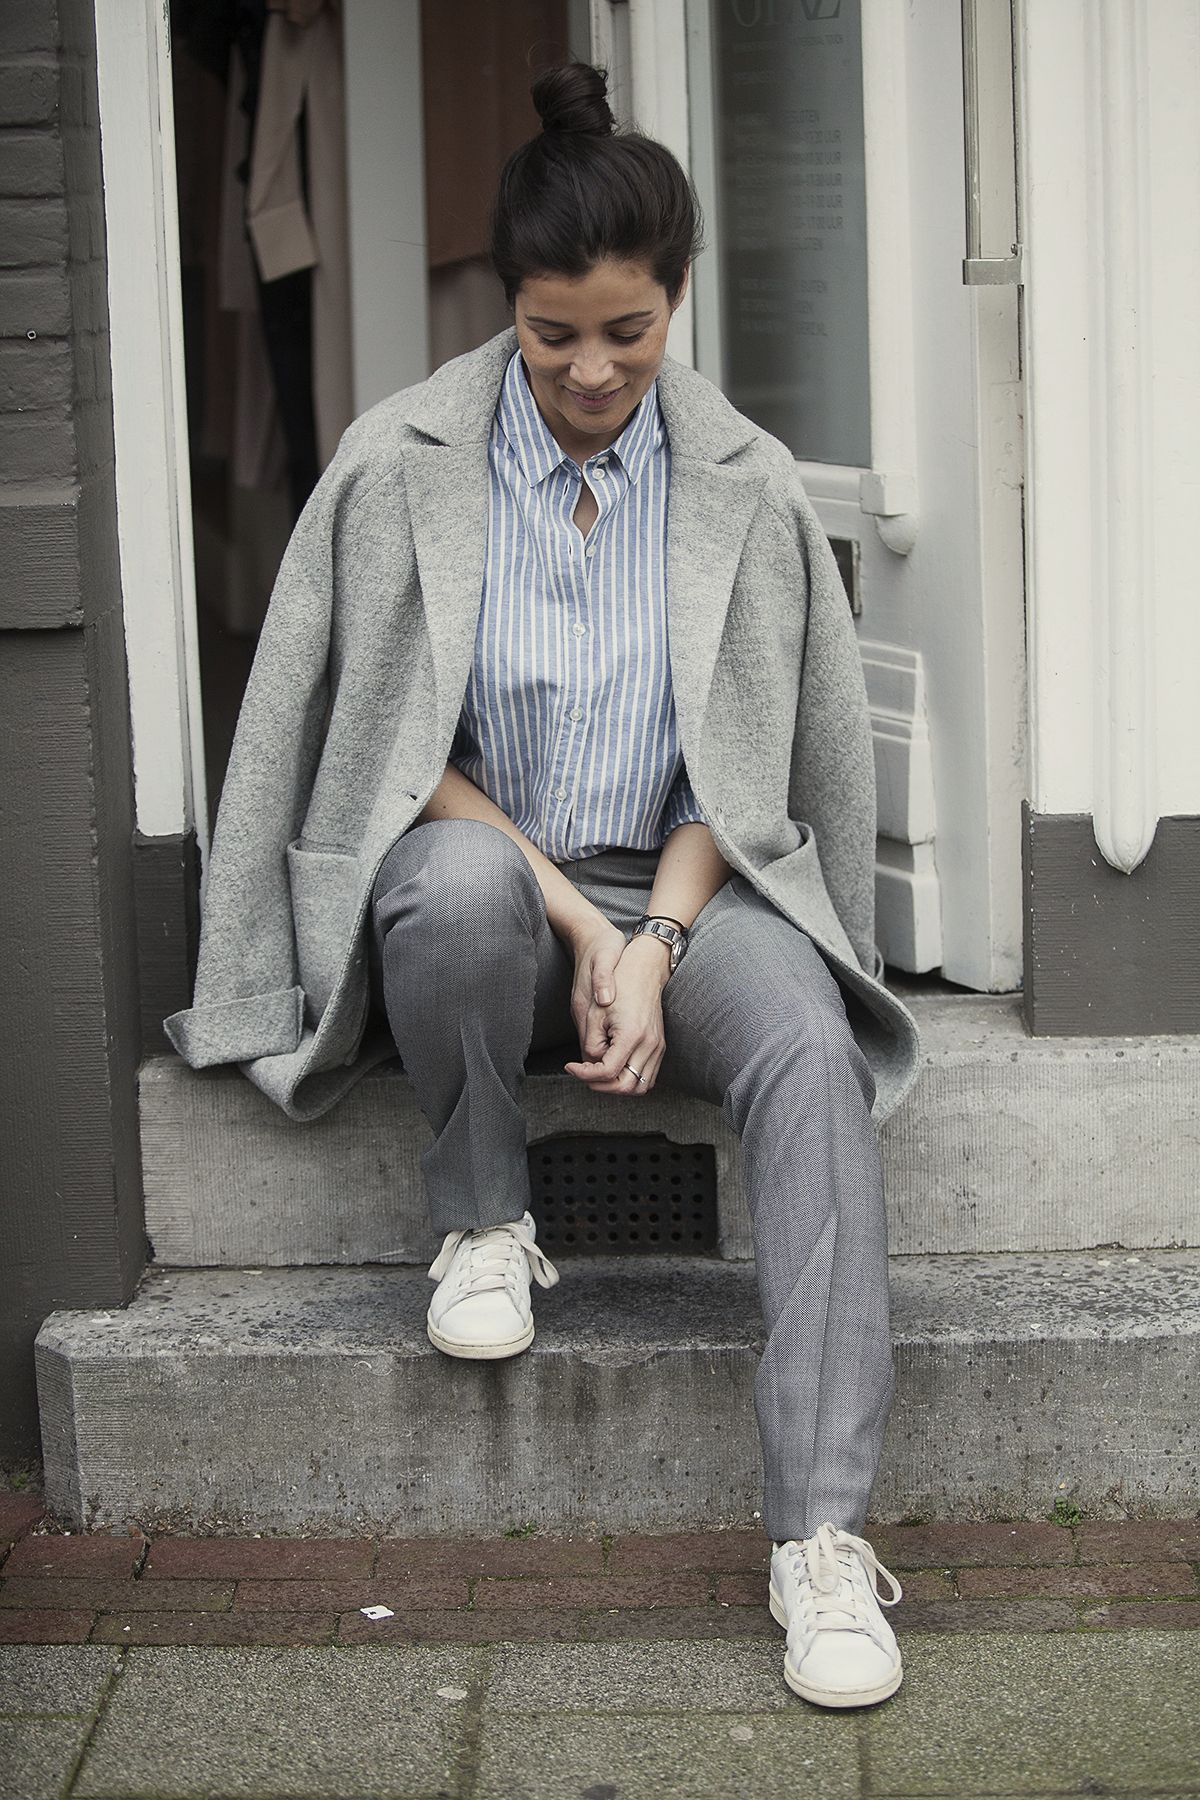 streetstyle spring 2016, oversized look coat shirt and suit pants